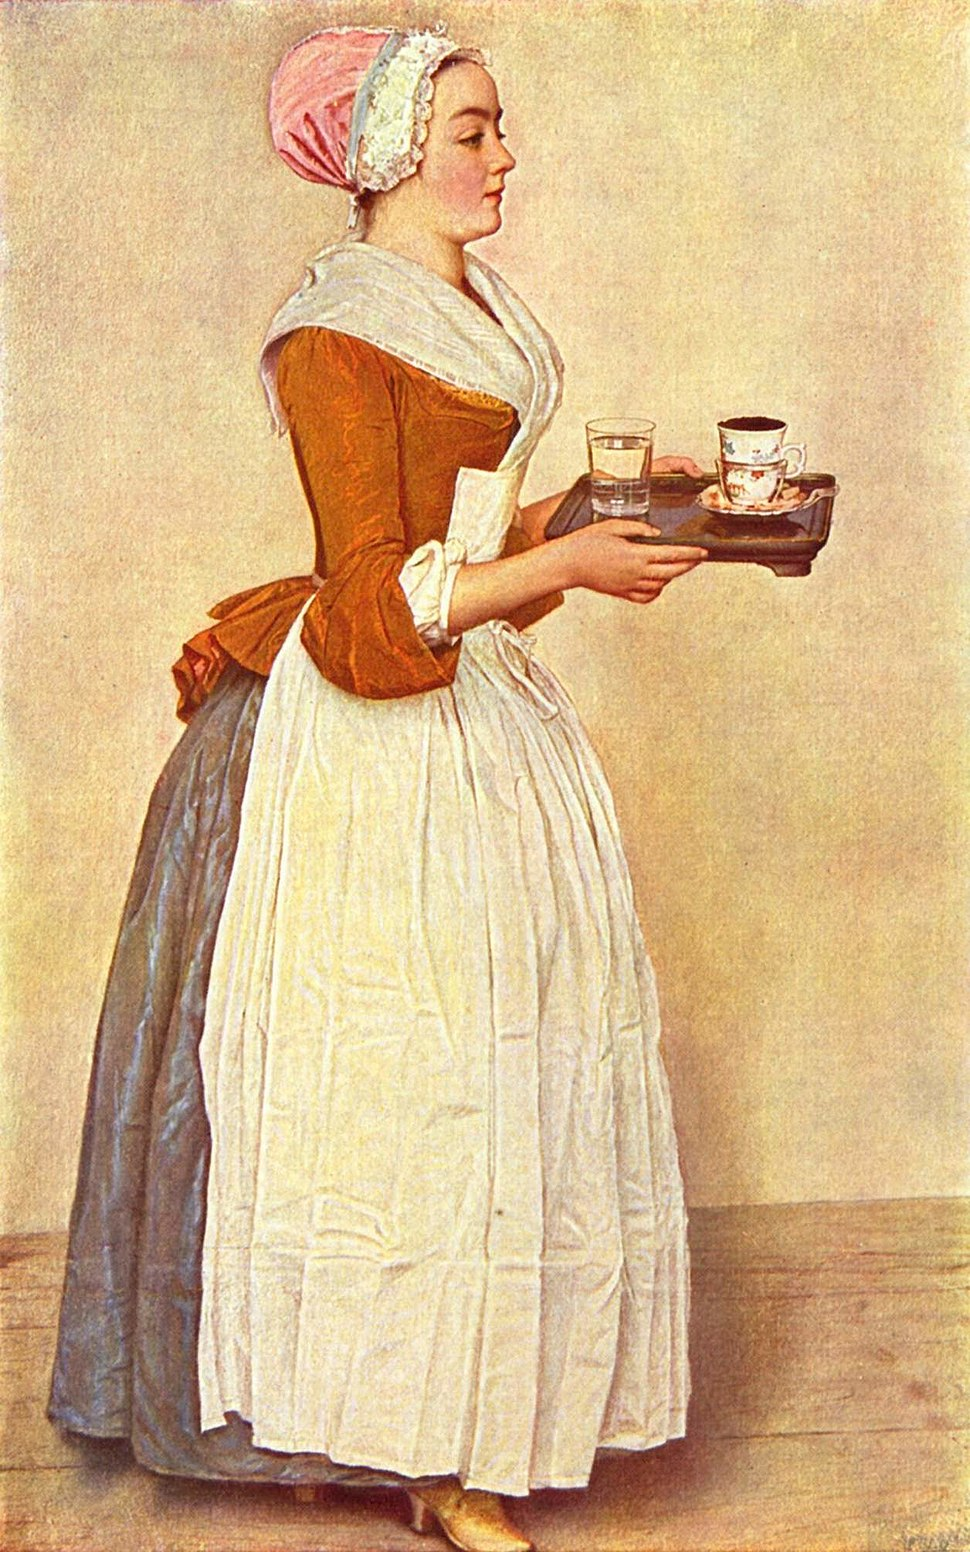 The Chocolate Girl by Jean-Étienne Liotard